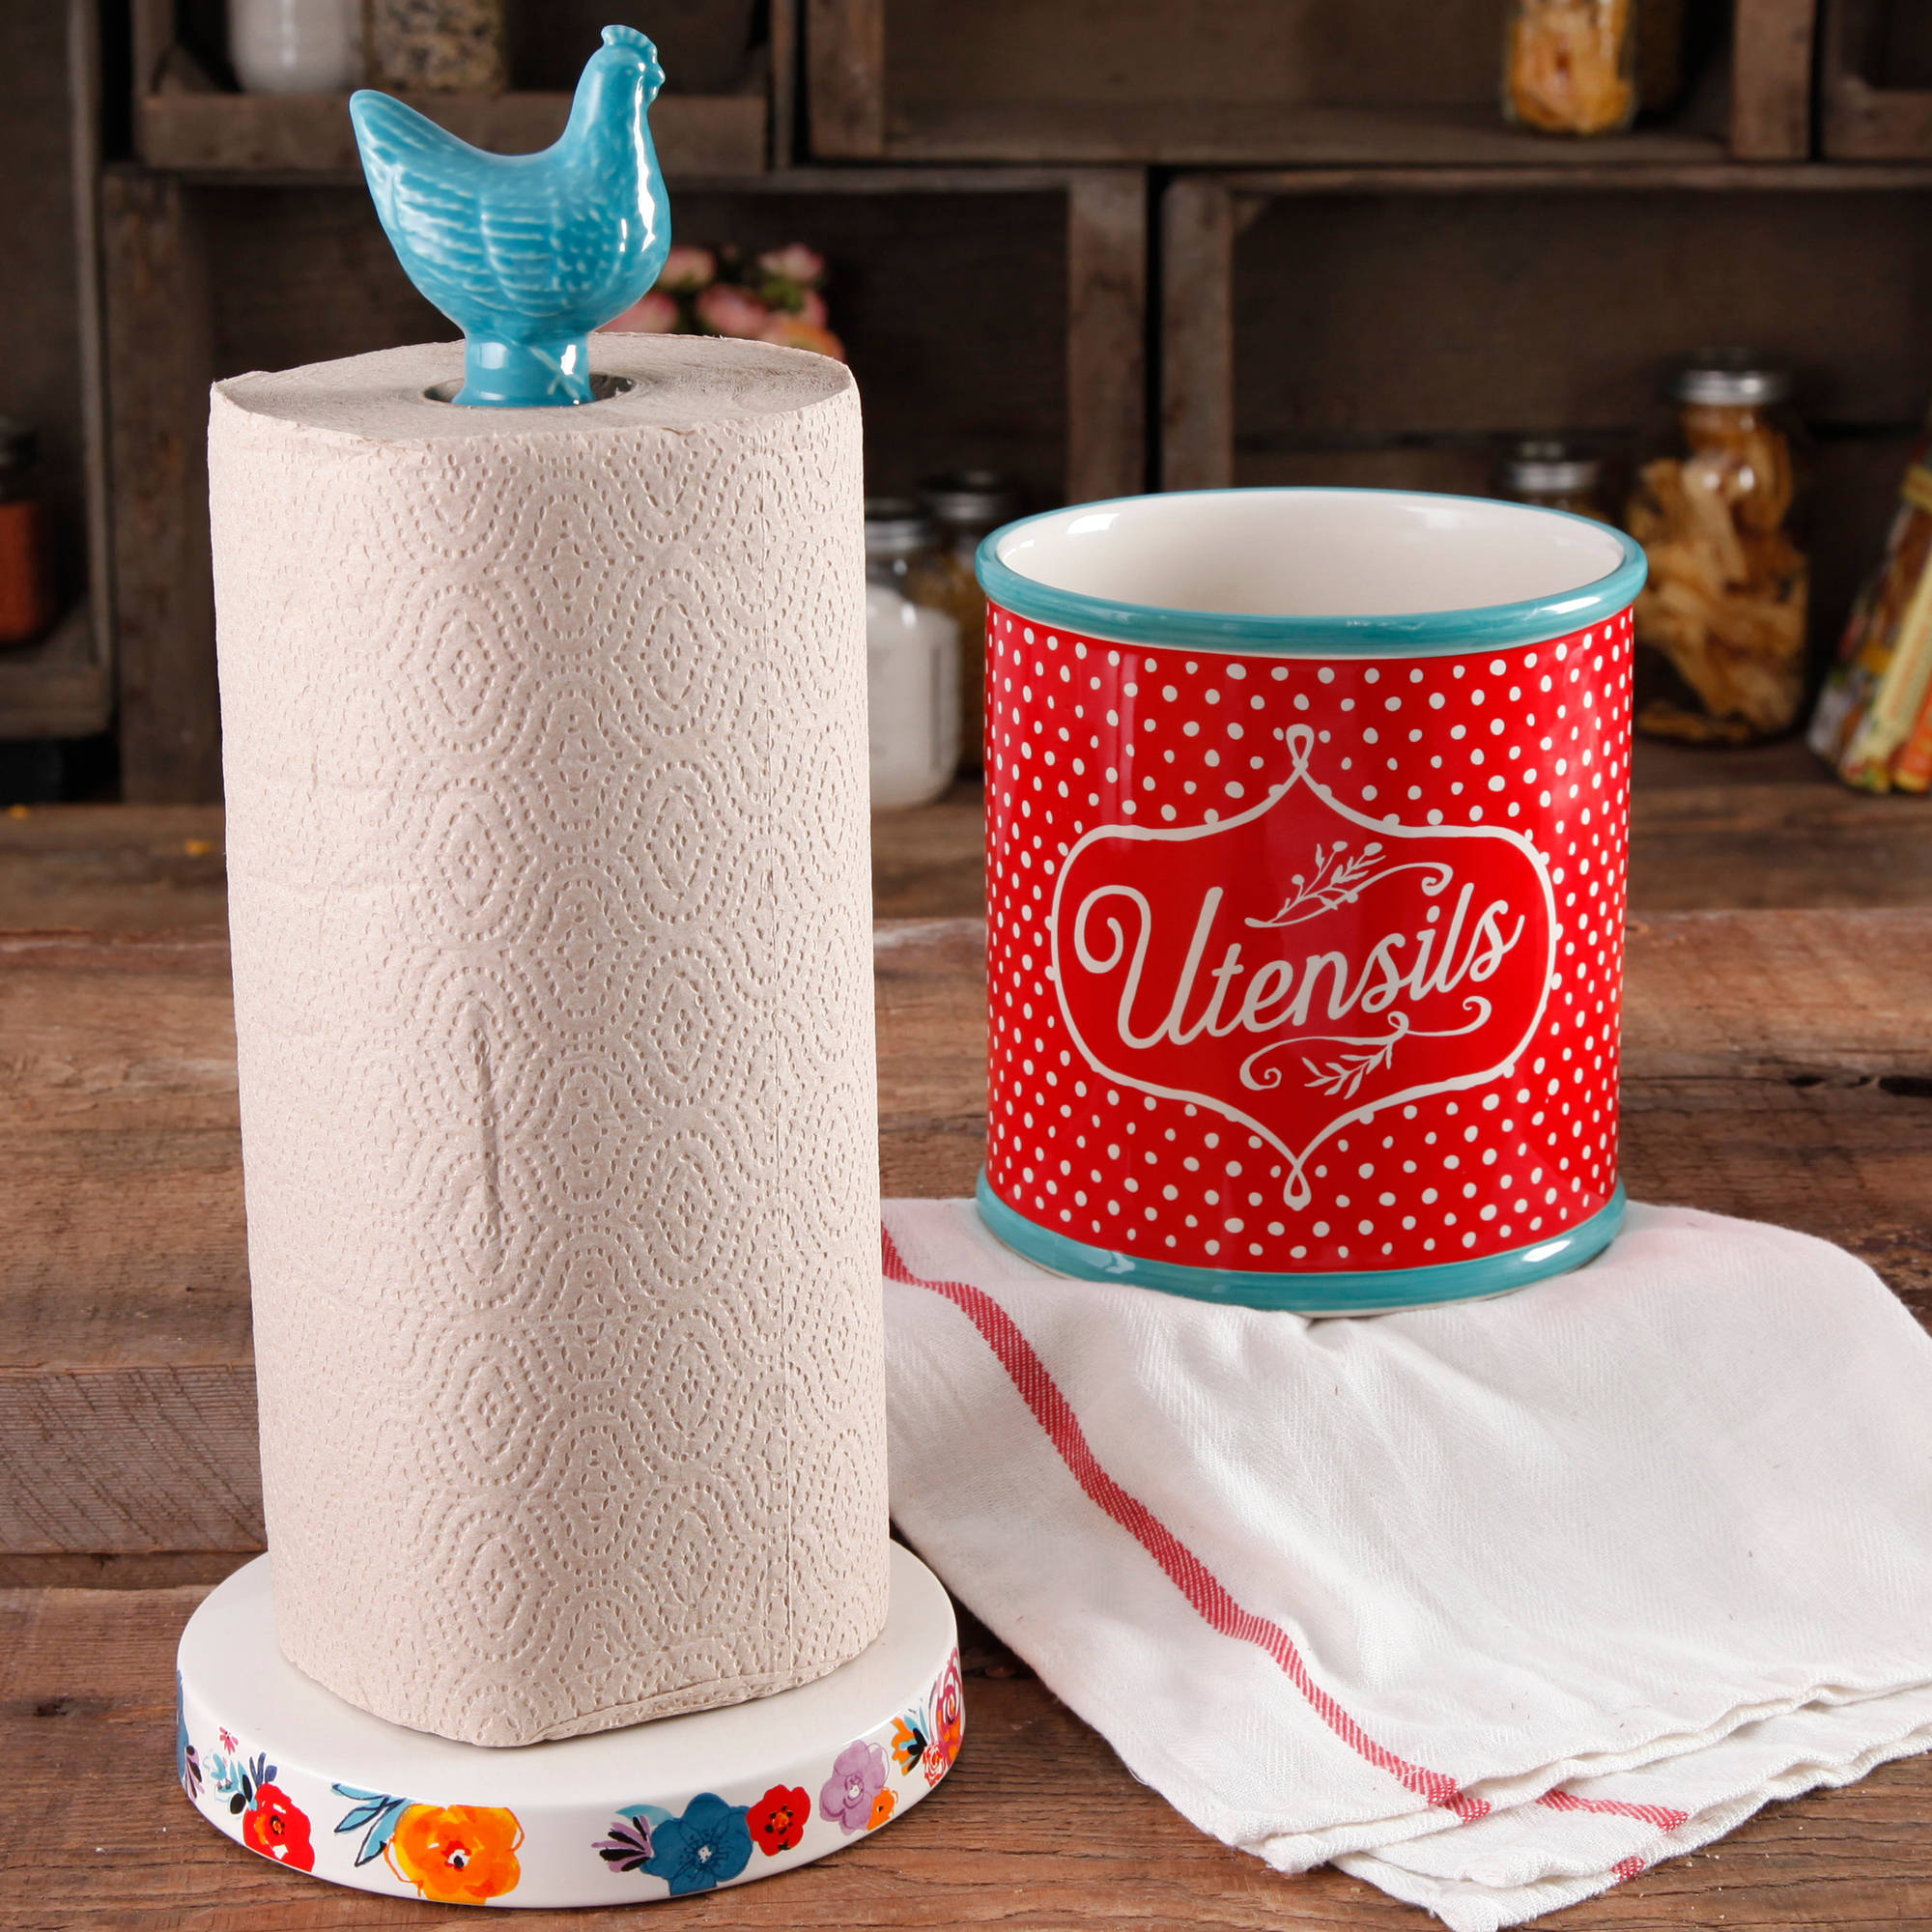 The Pioneer Woman Flea Market Stoneware Turquoise Paper Towel Holder And Crock